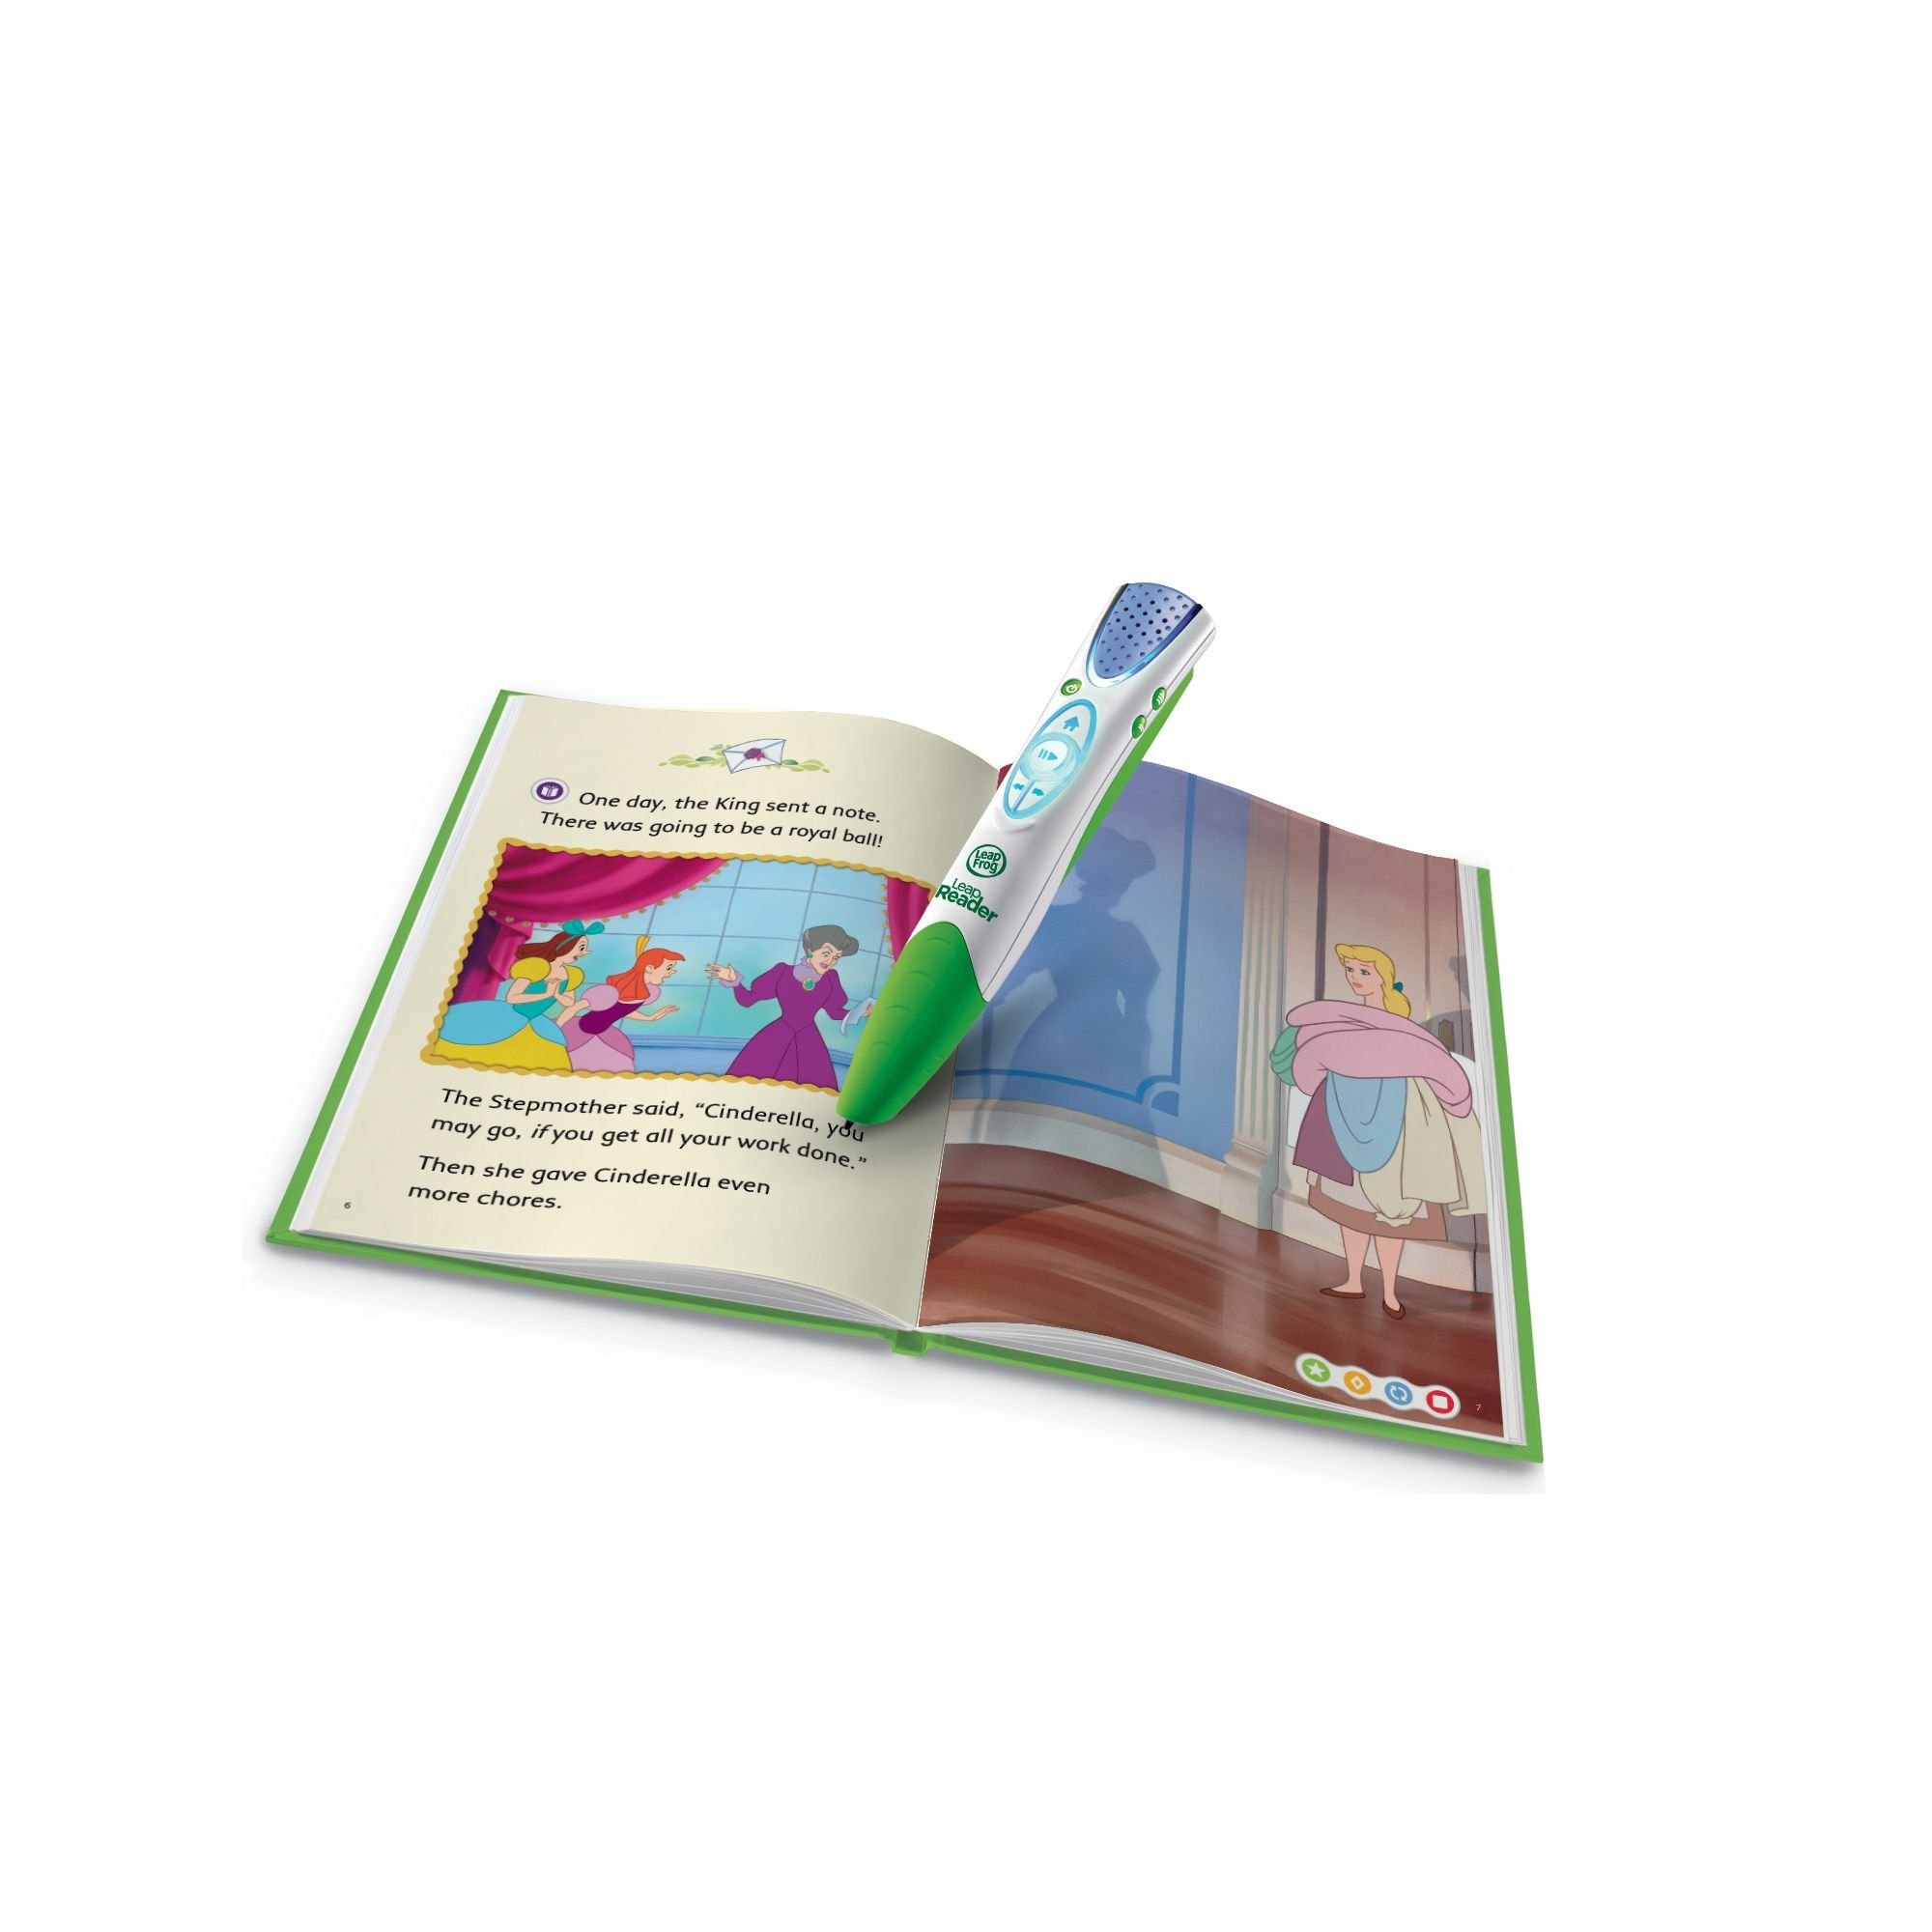 LeapFrog LeapReader Book: Disney Cinderella: The Heart That Believes (works with Tag) by LeapFrog (Image #1)